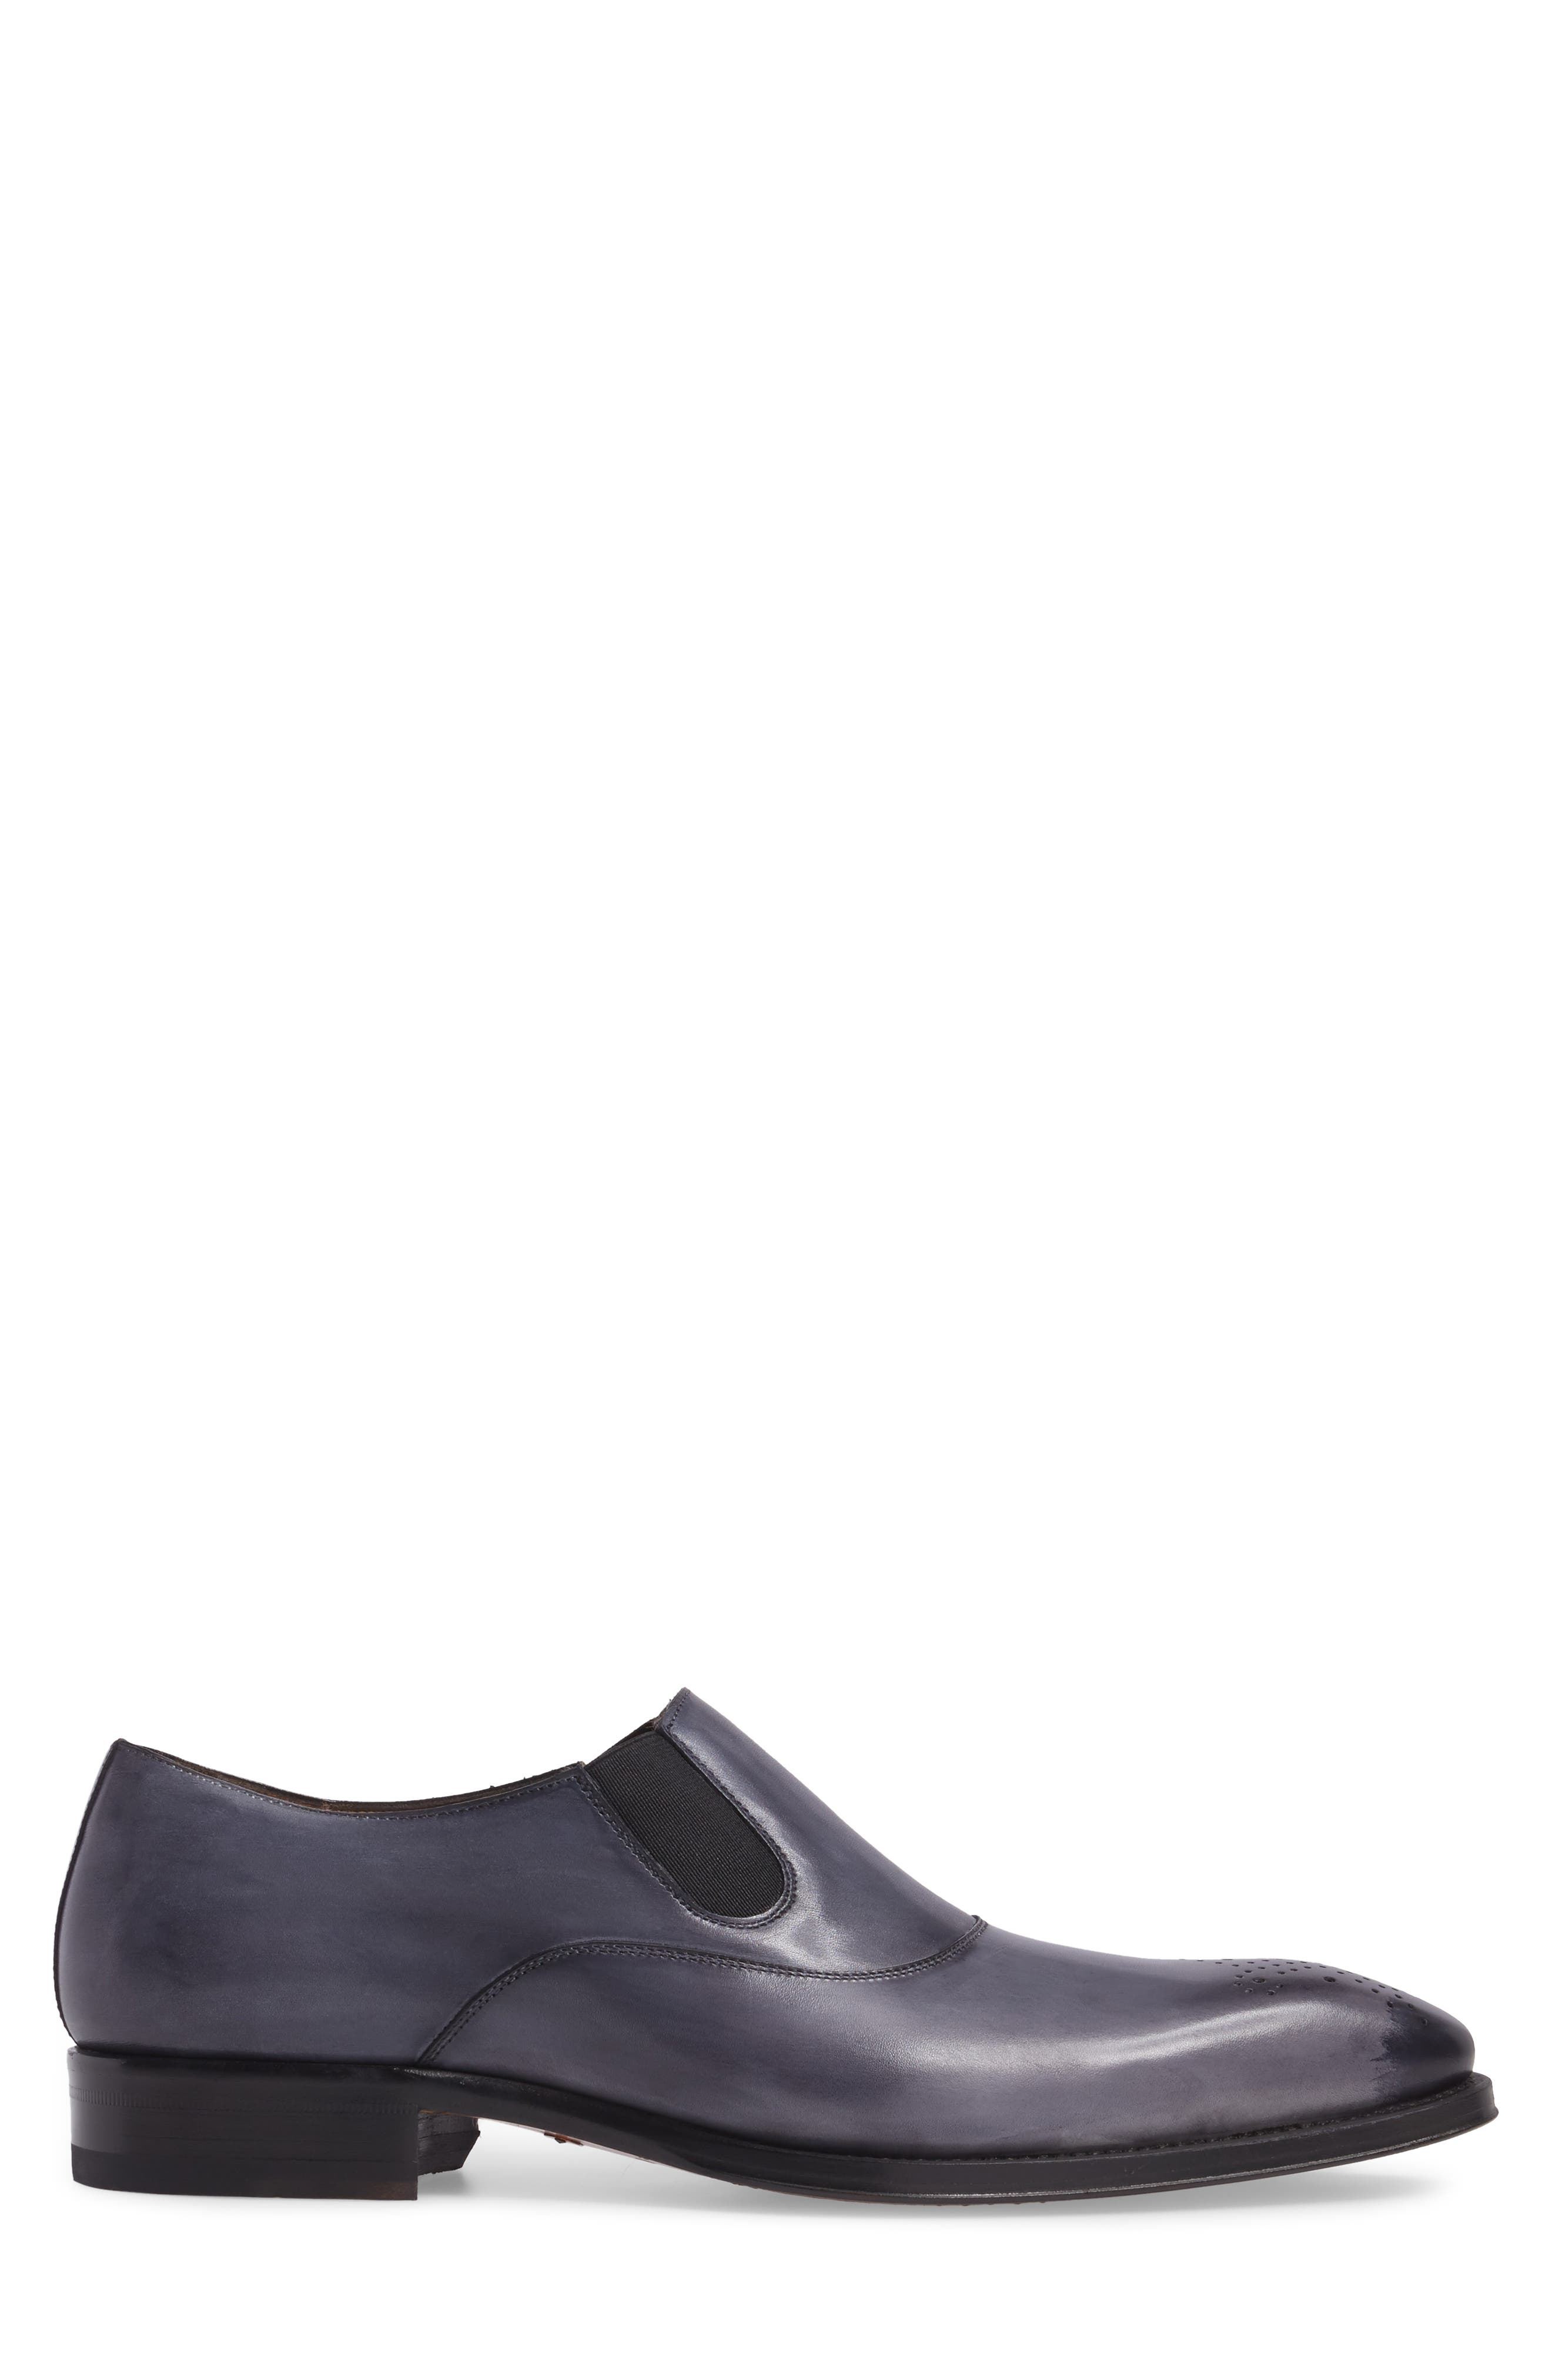 Posadas Venetian Loafer,                             Alternate thumbnail 3, color,                             Grey Leather